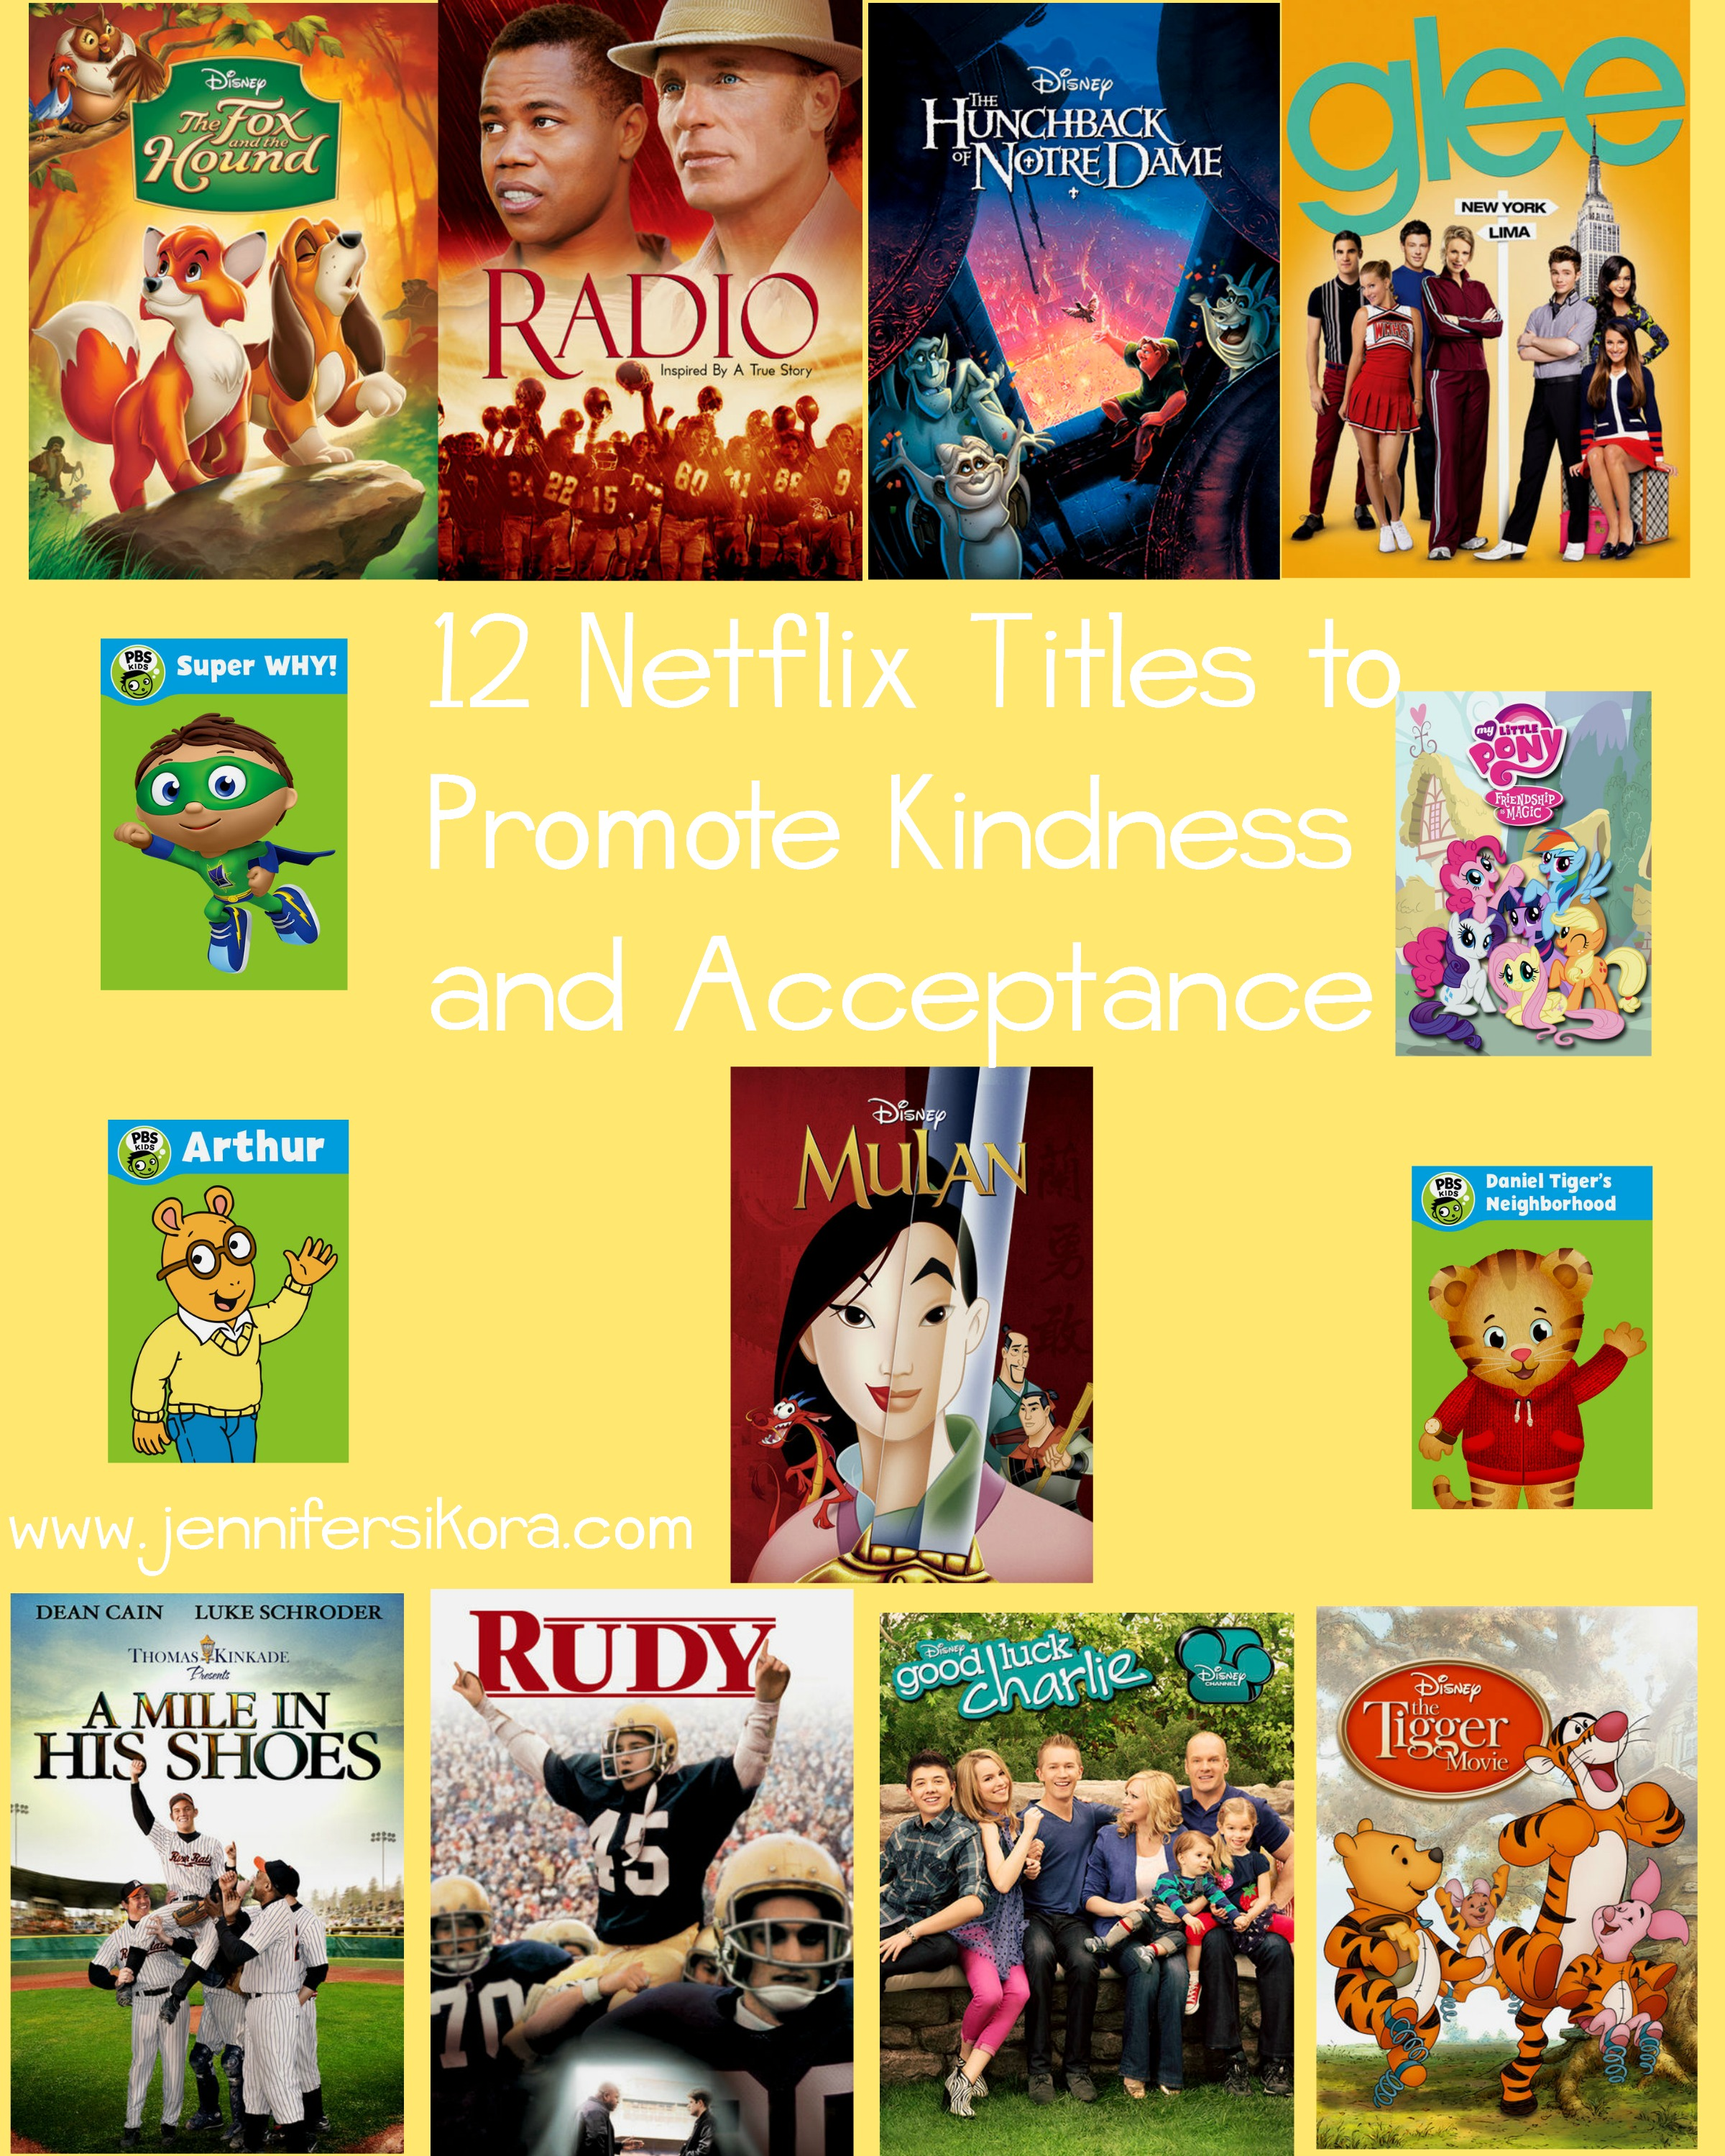 12 Netflix Titles to Promote Kindness and Acceptance